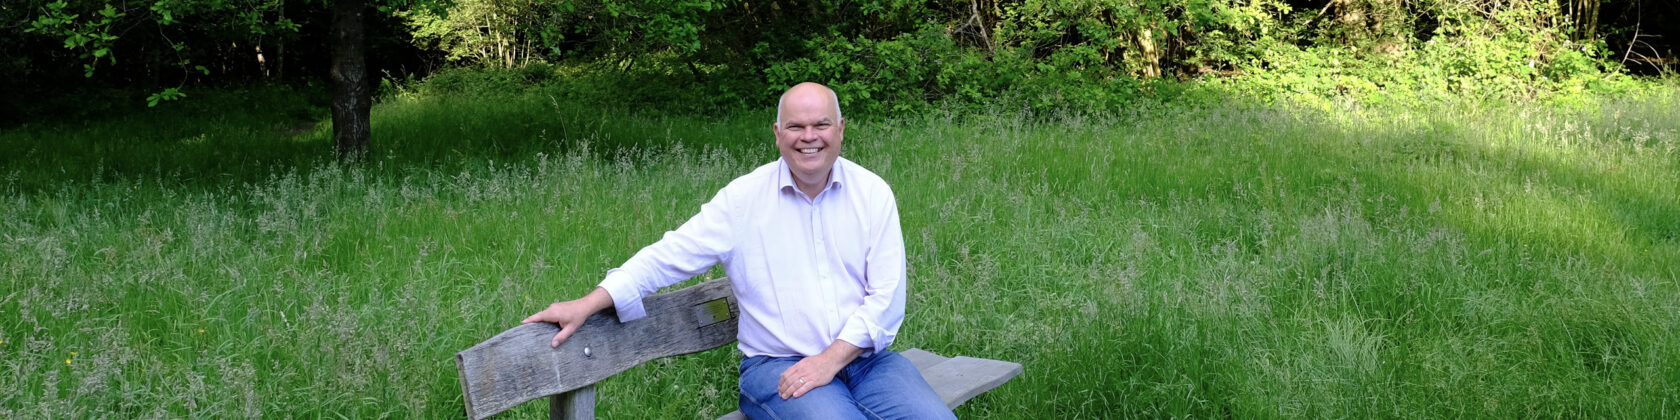 Portrait of Warren Ralls sitting on a bench surrounded by lush green grass